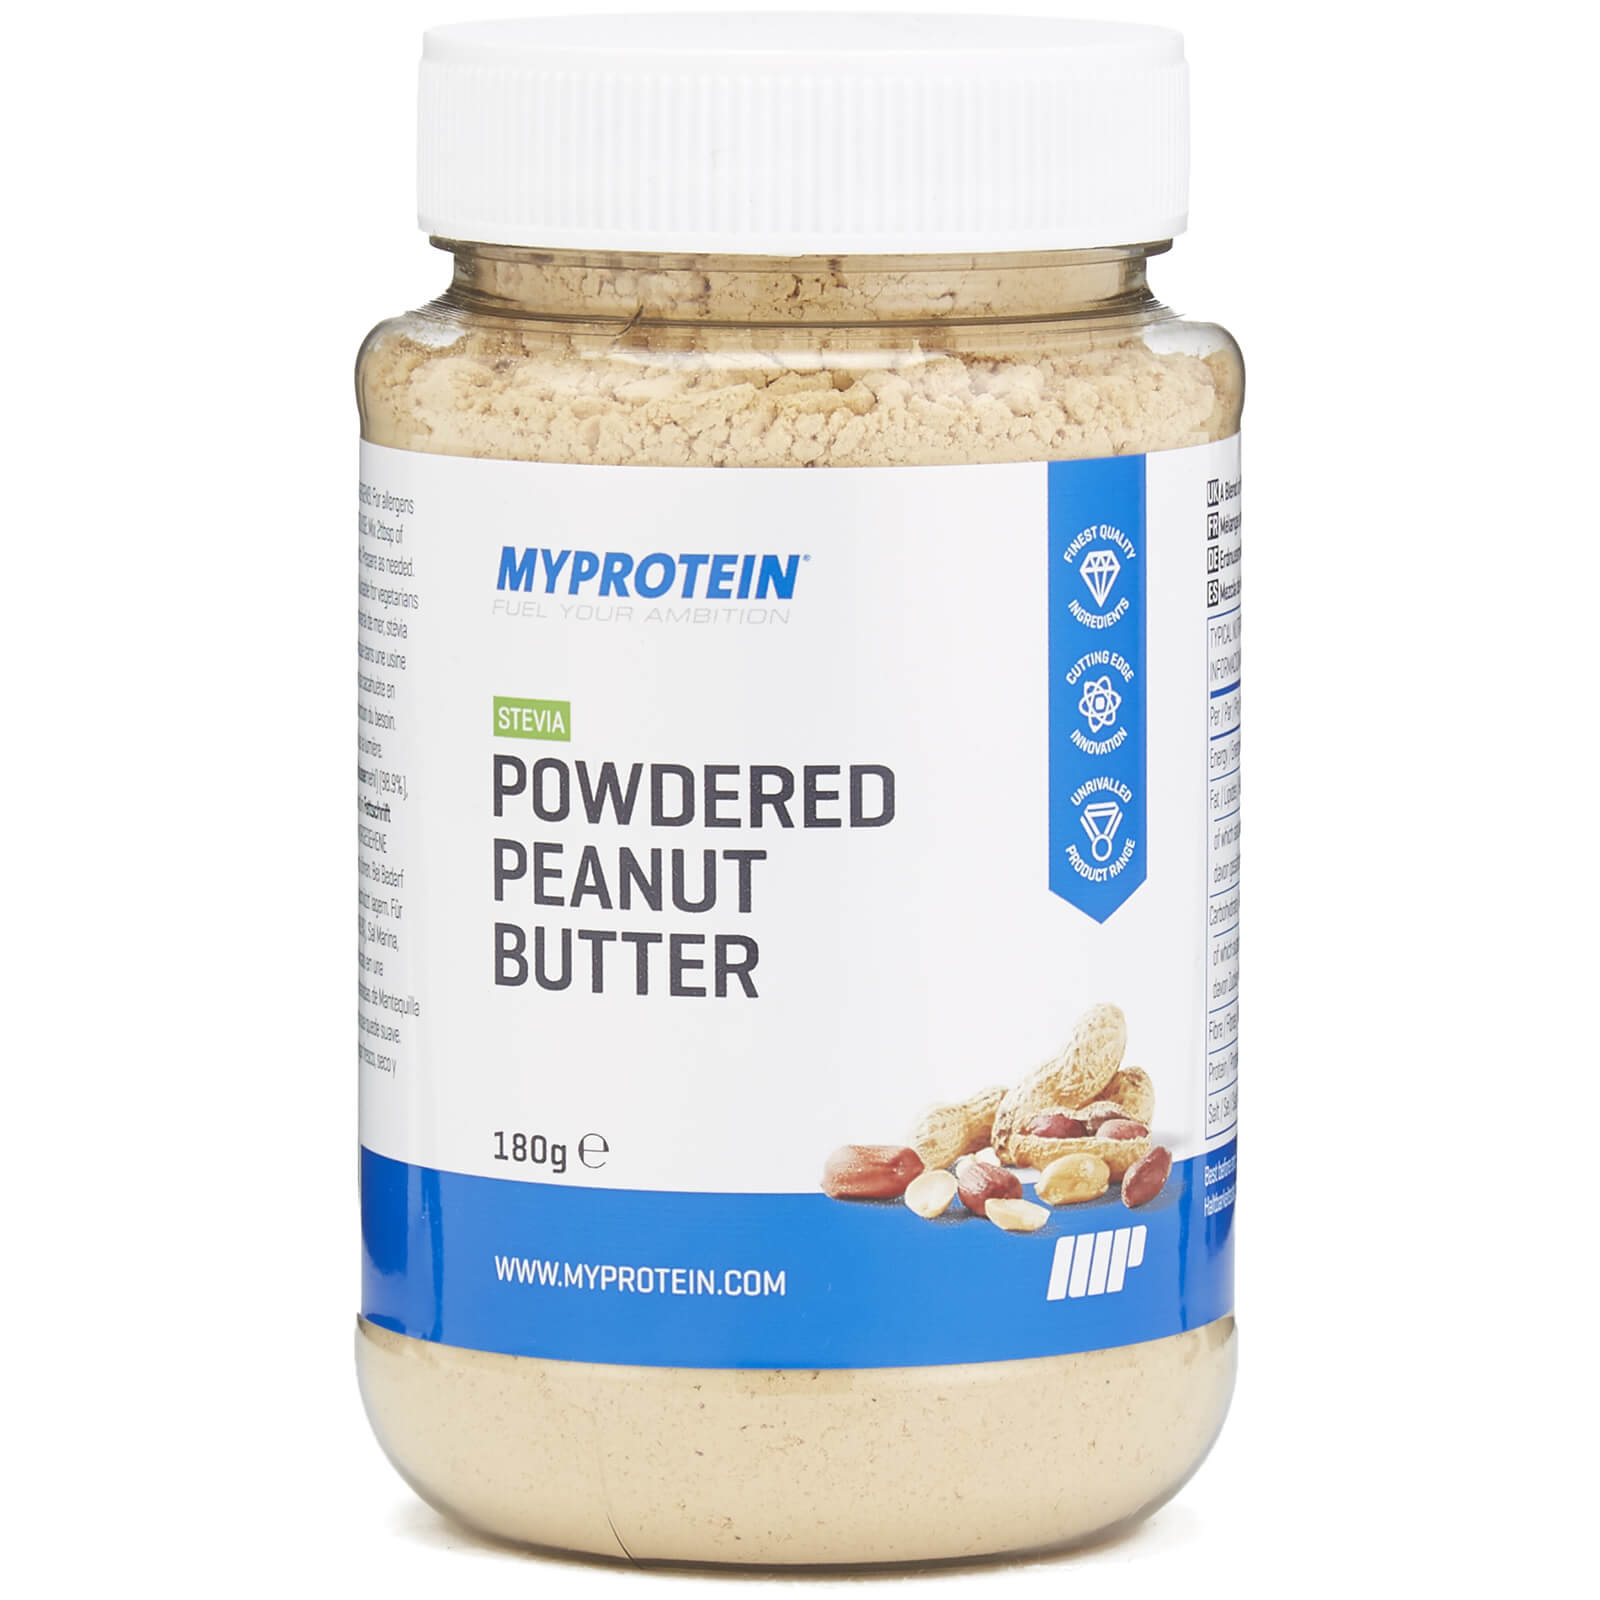 Powdered Peanut Butter - Stevia - 180g